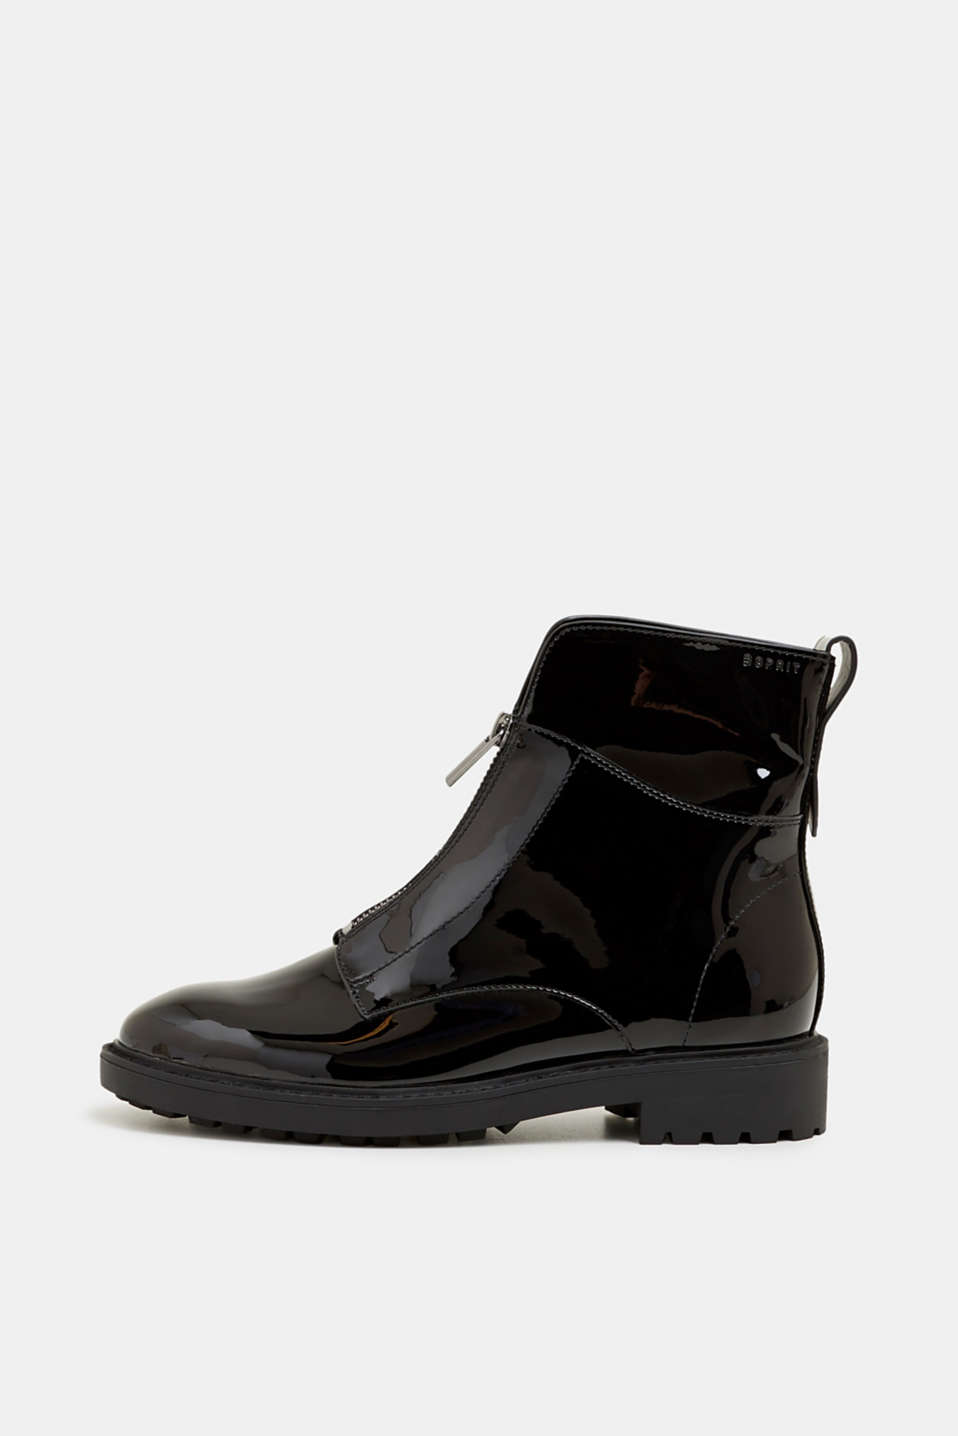 Esprit - Patent ankle boots with zips